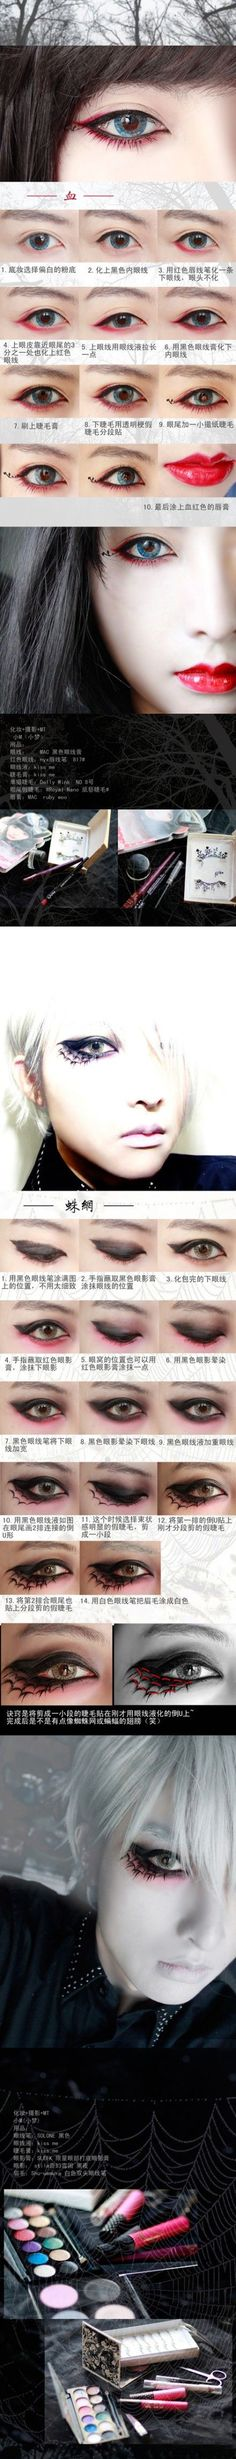 definitely not everyday makeup but this is gourgeous